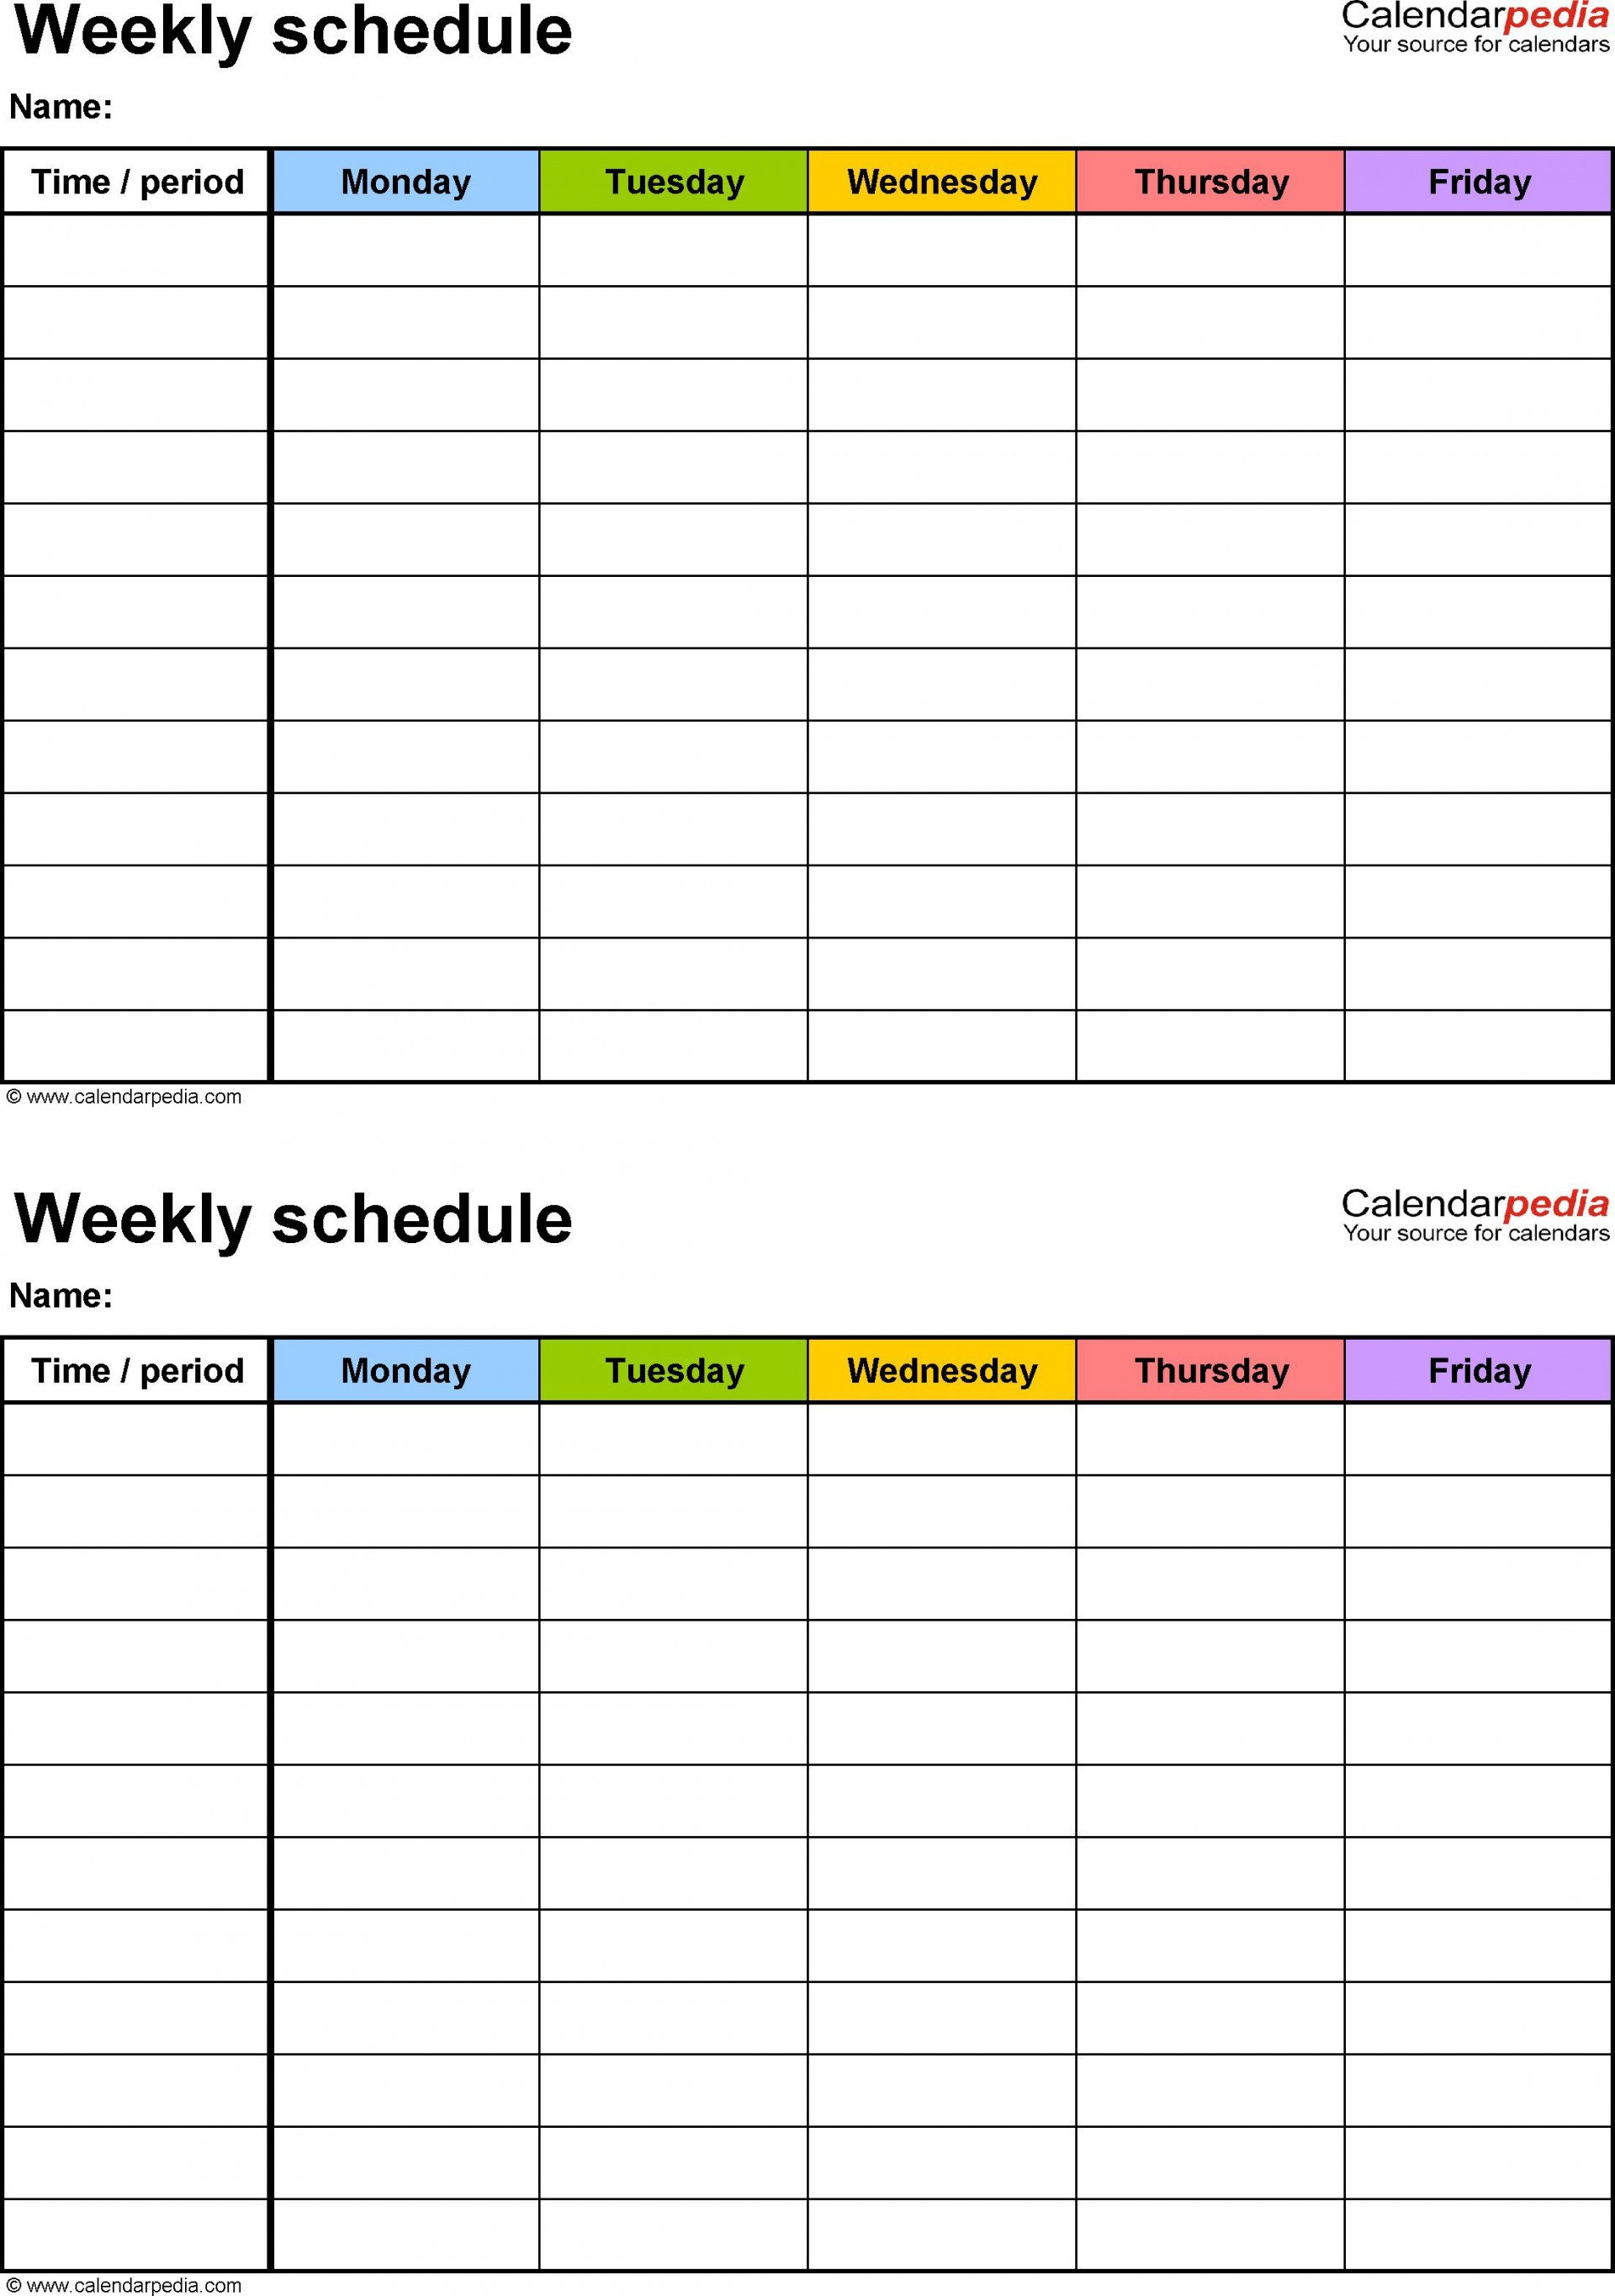 001 Marvelou Free Weekly Calendar Template Idea  Printable With Time Slot 2019 Word1920